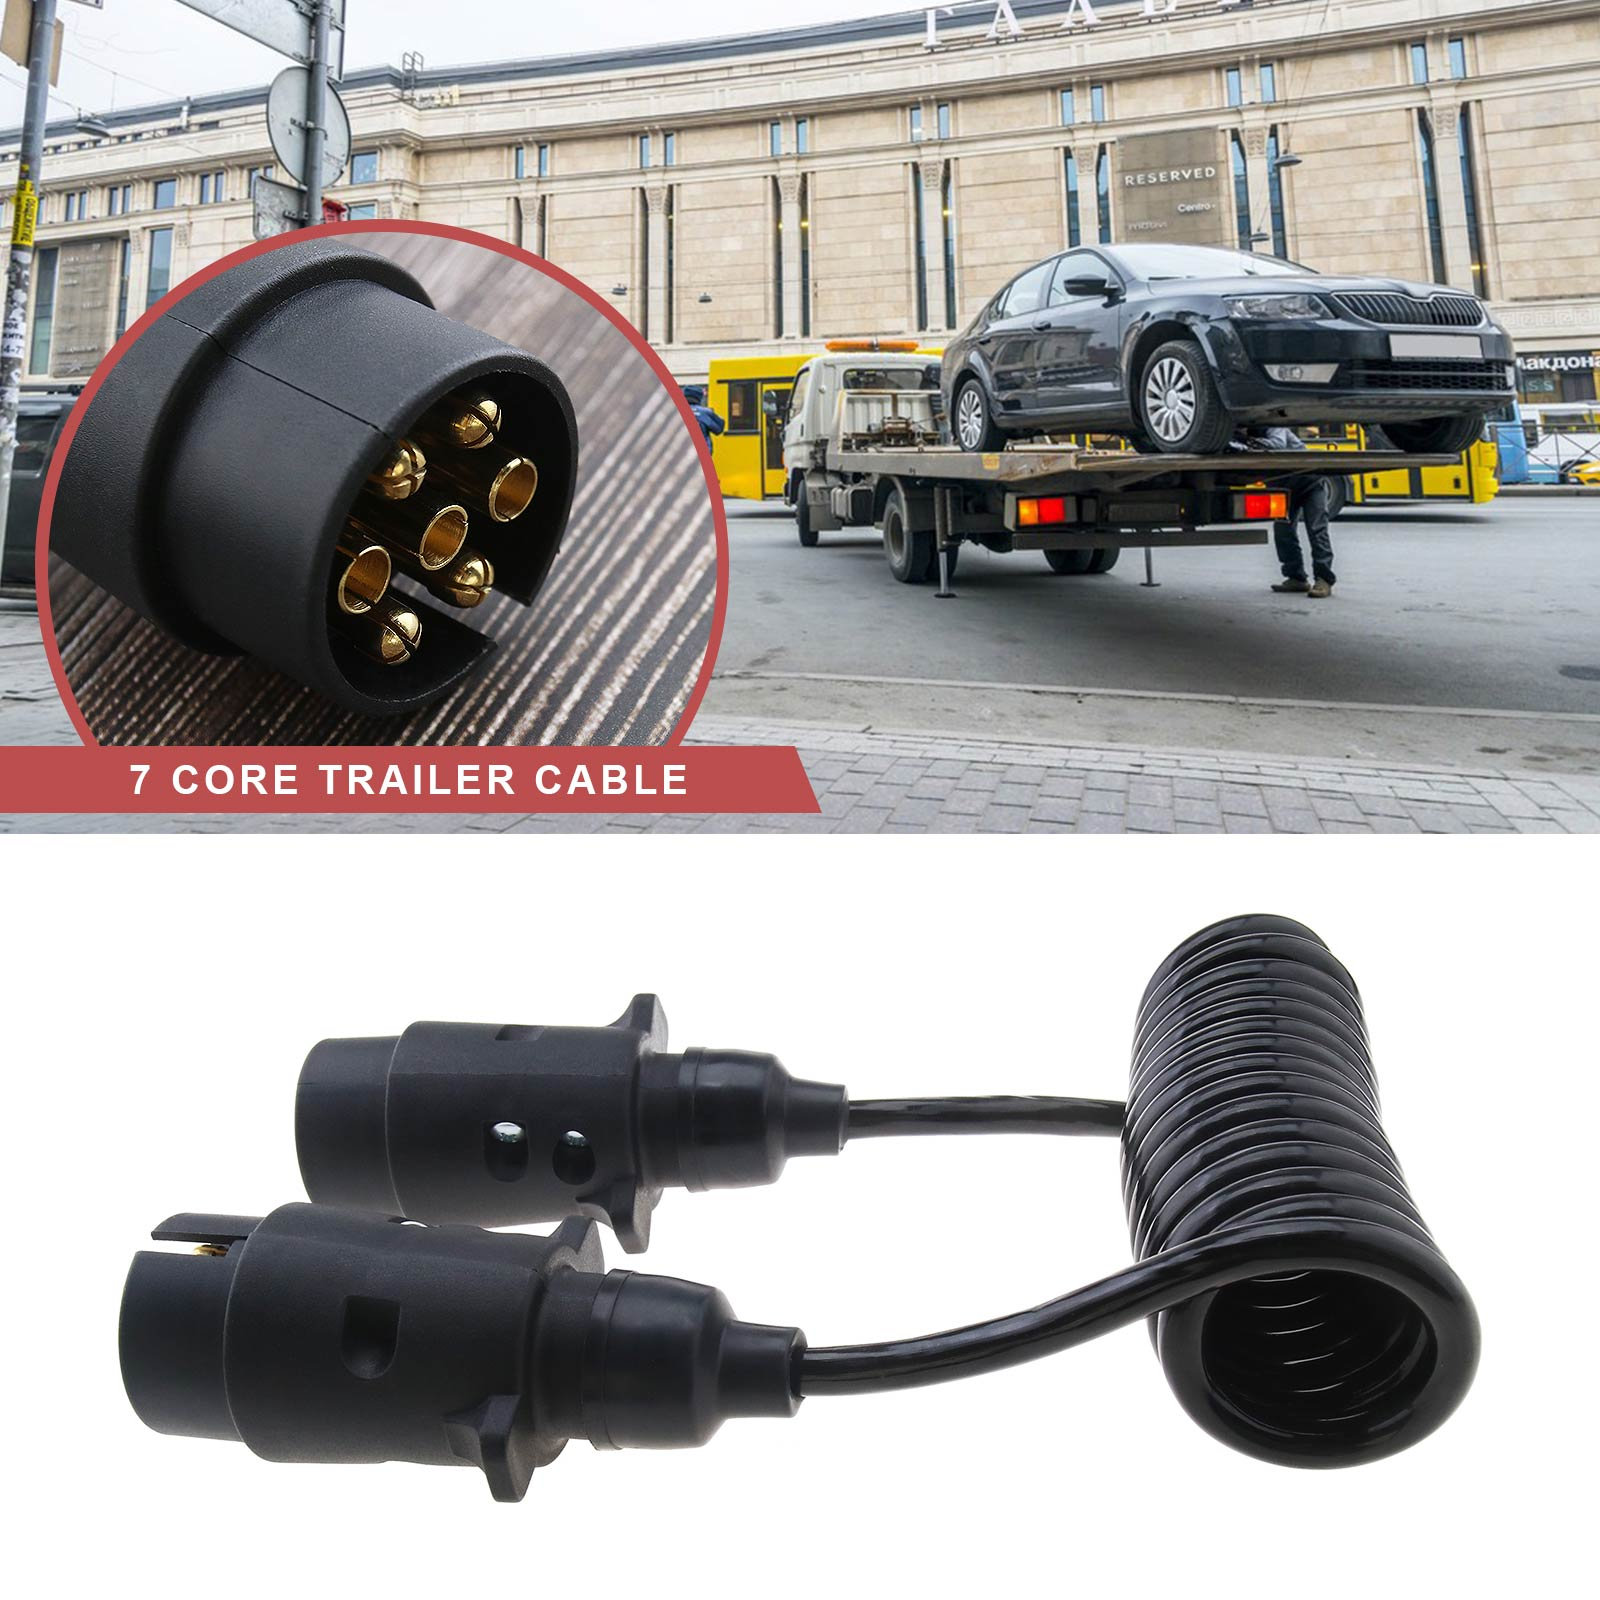 1.2M EXTENSION CURLY CABLE TRAILER LIGHT BOARD 7 PIN PLUG & SOCKET ...